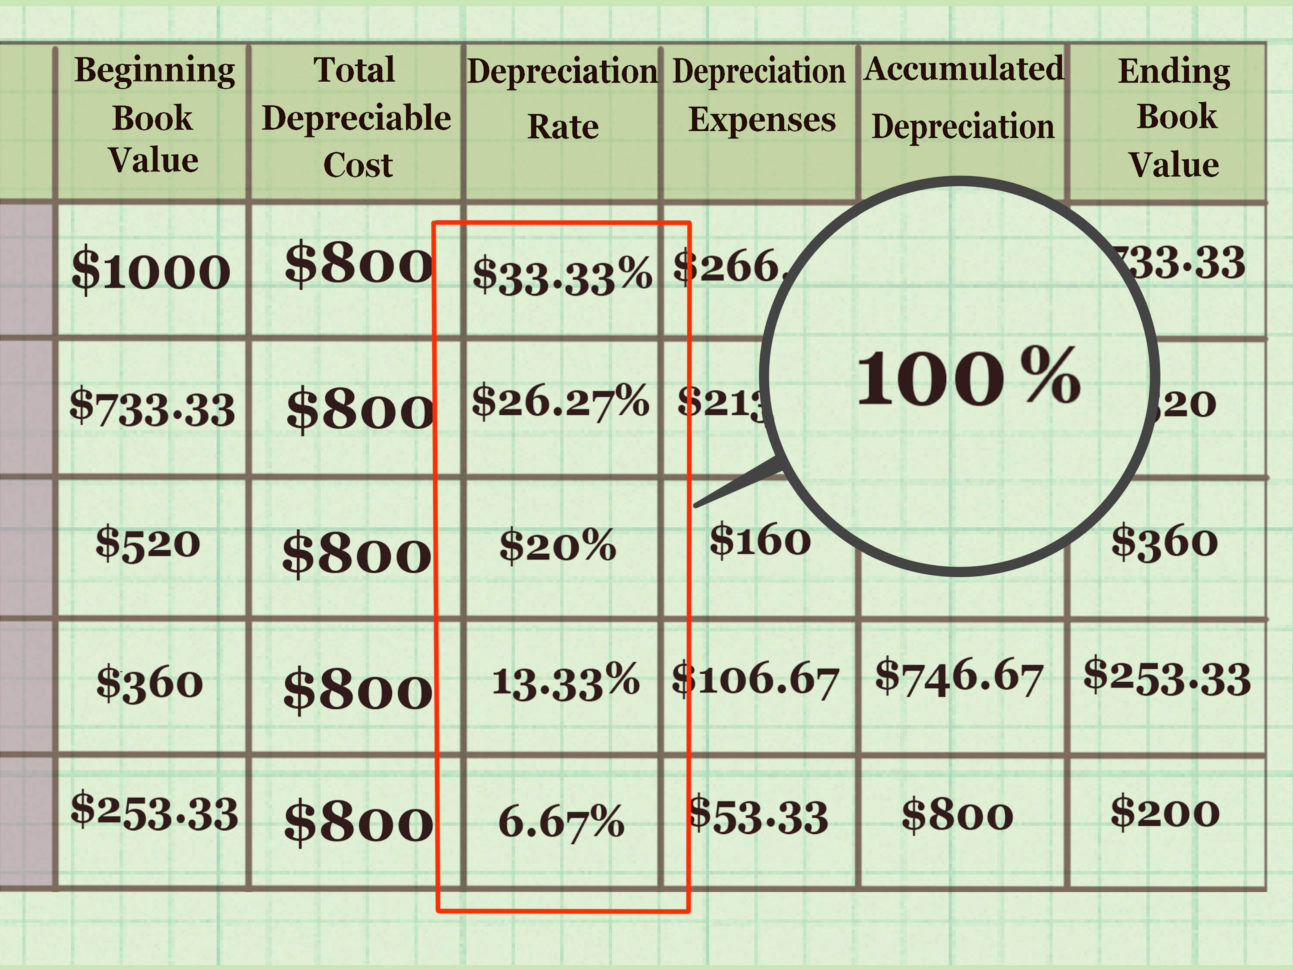 Fixed Asset Depreciation Excel Spreadsheet Regarding How To Calculate Depreciation On Fixed Assets With Calculator